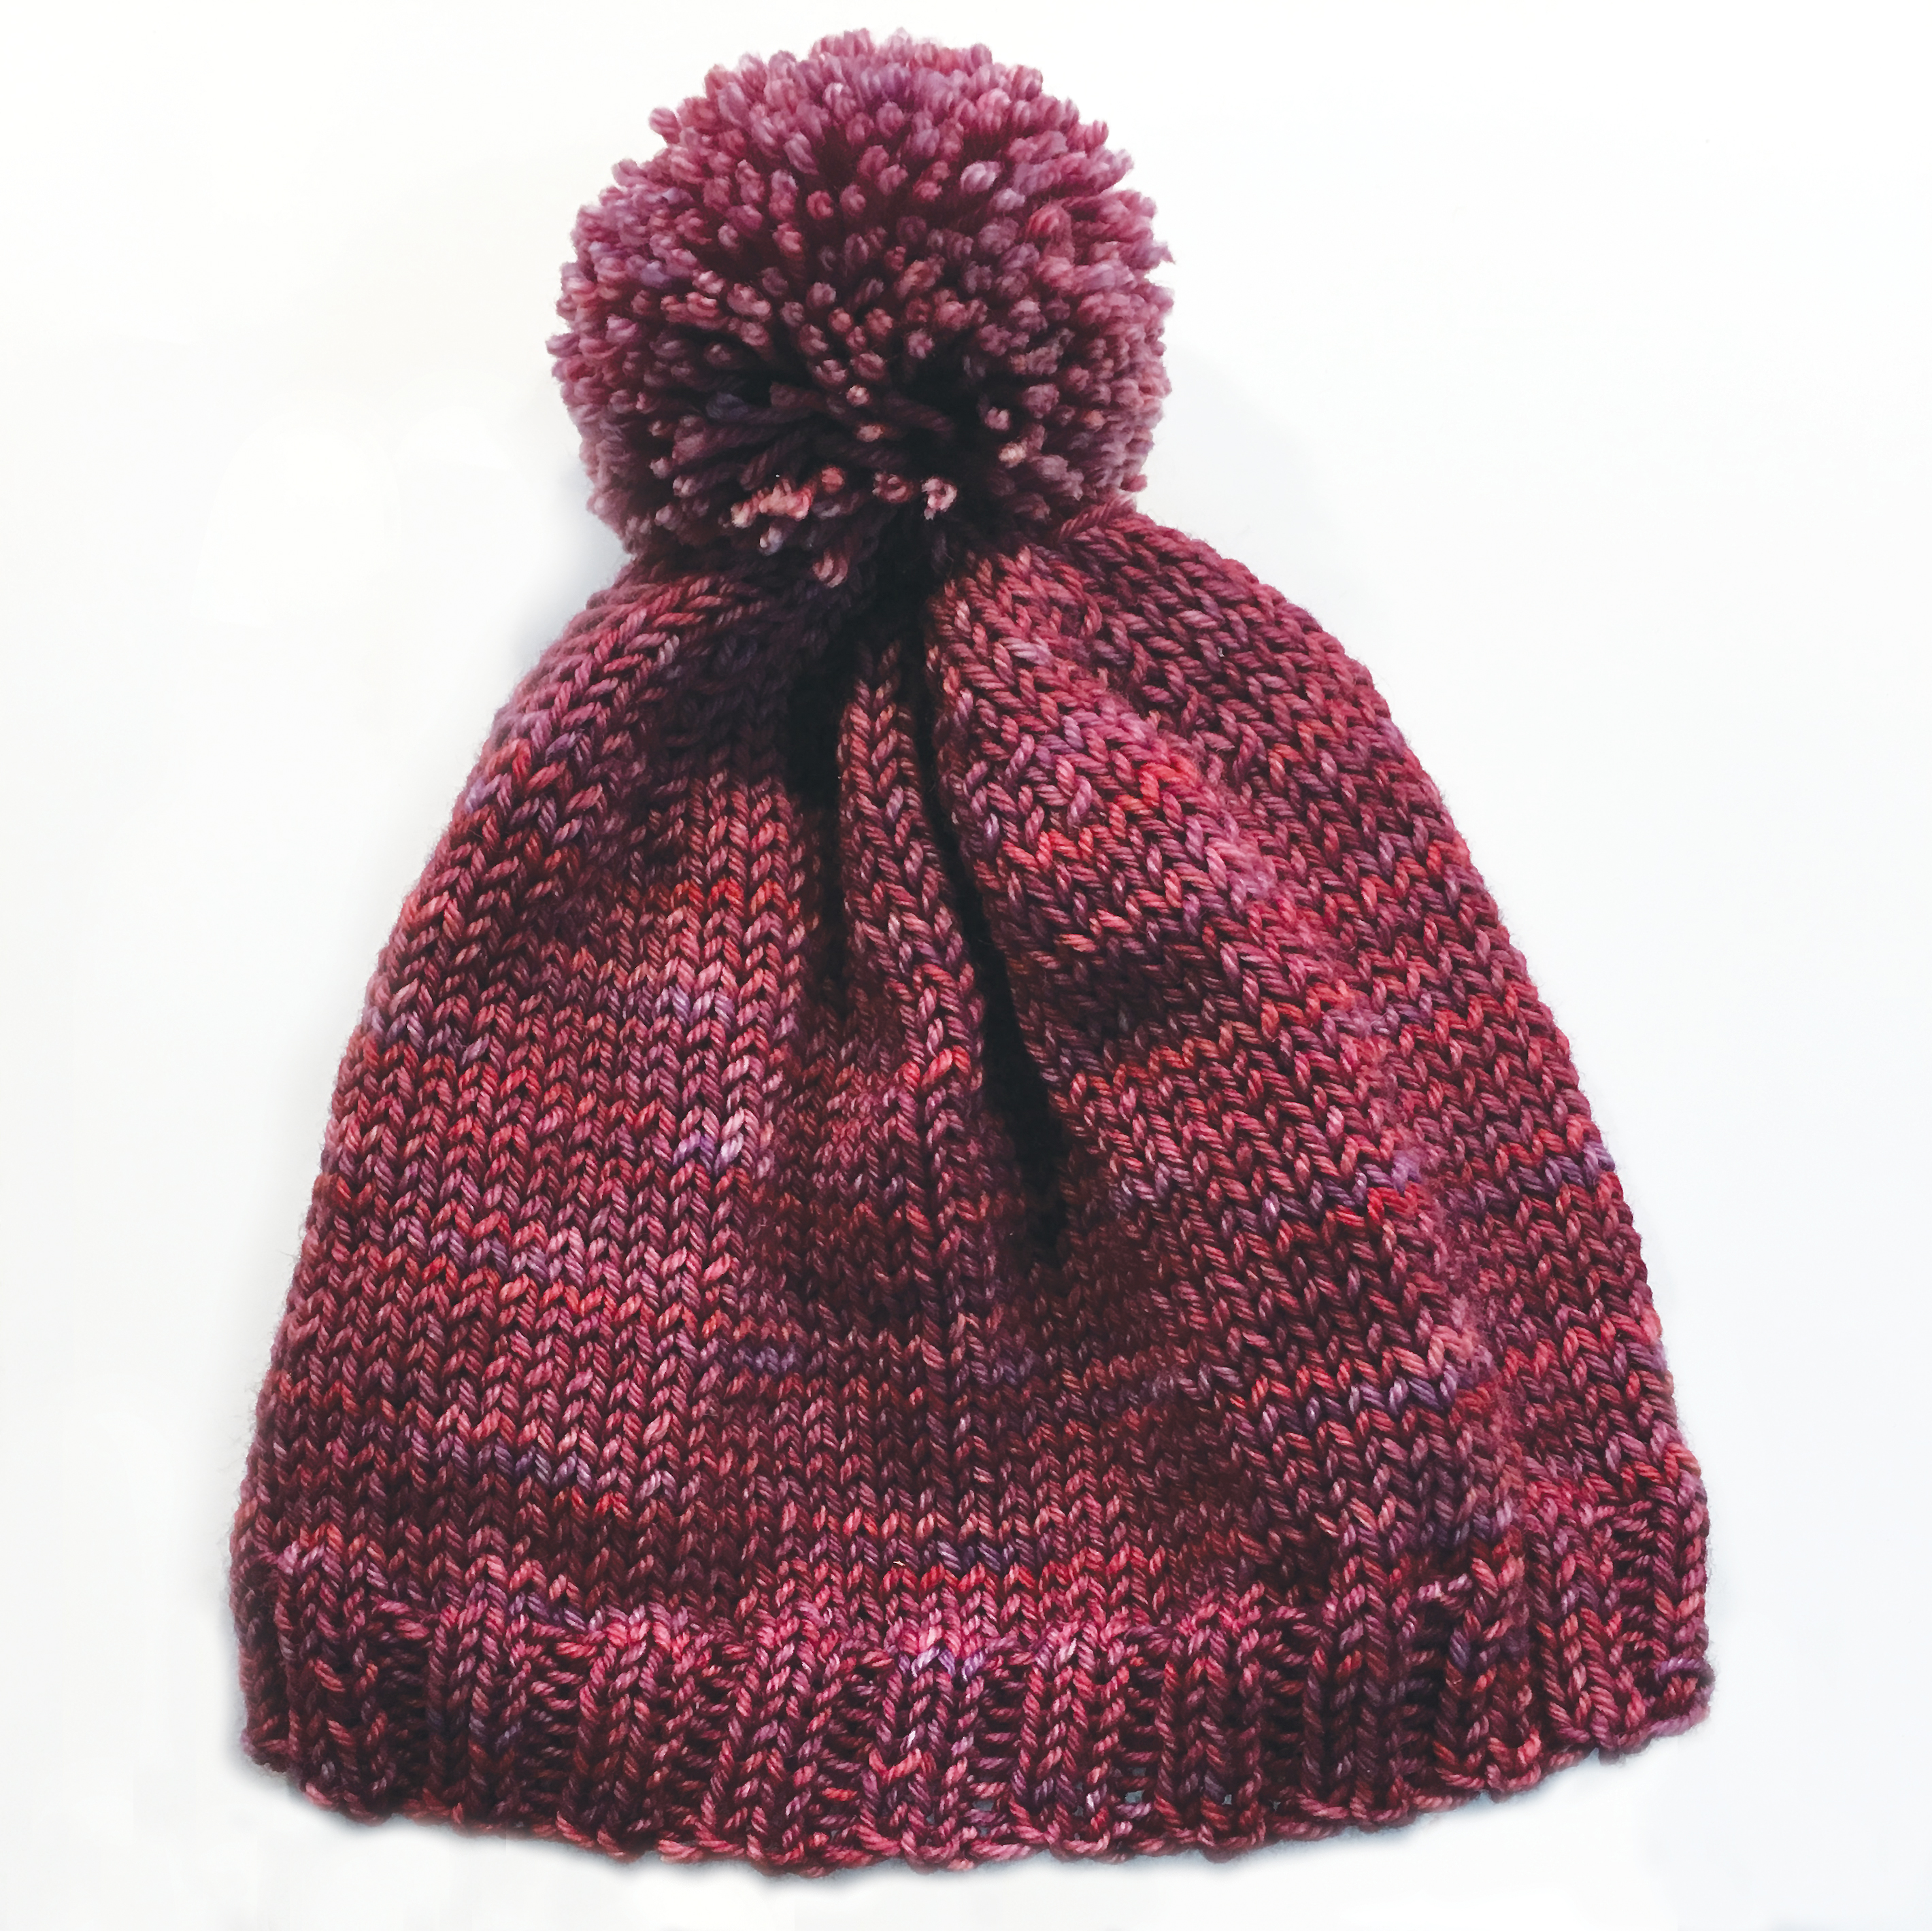 wool hat made in buffalo